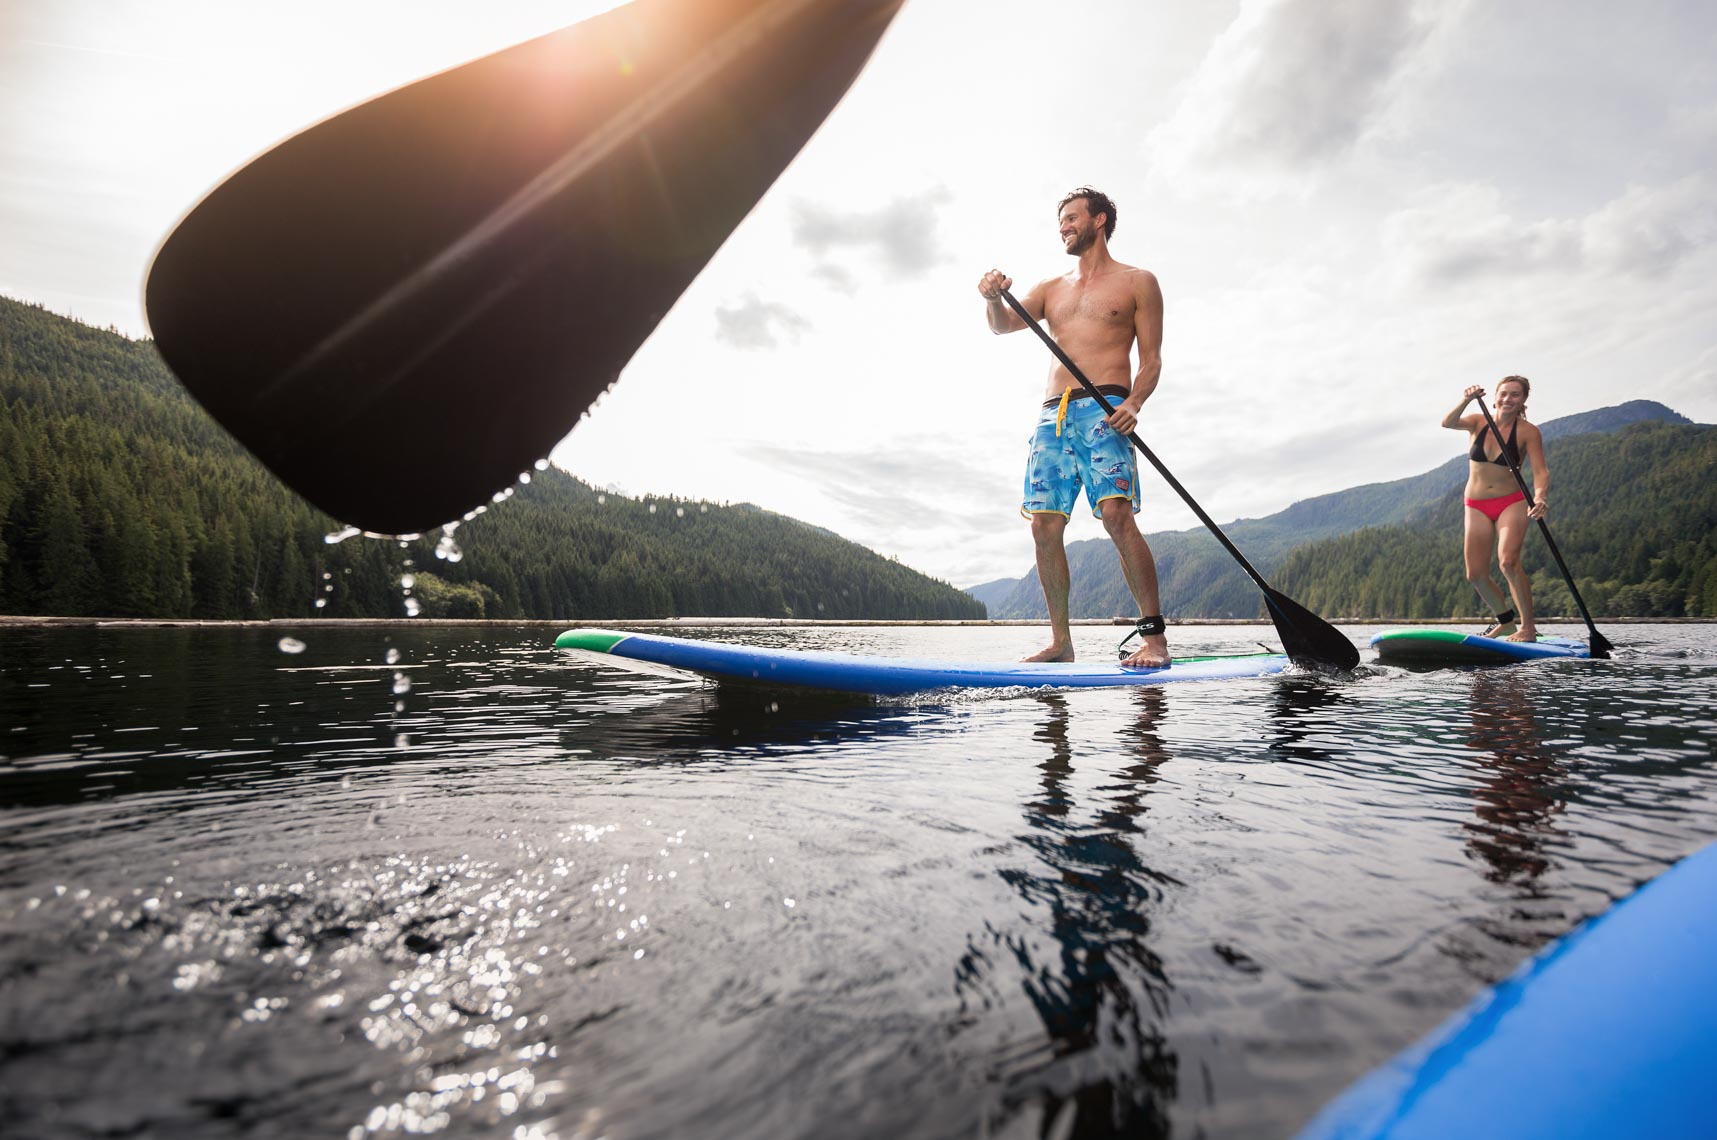 Standup paddleboarding in British Columbia Canada by tourism and lifestyle photographer